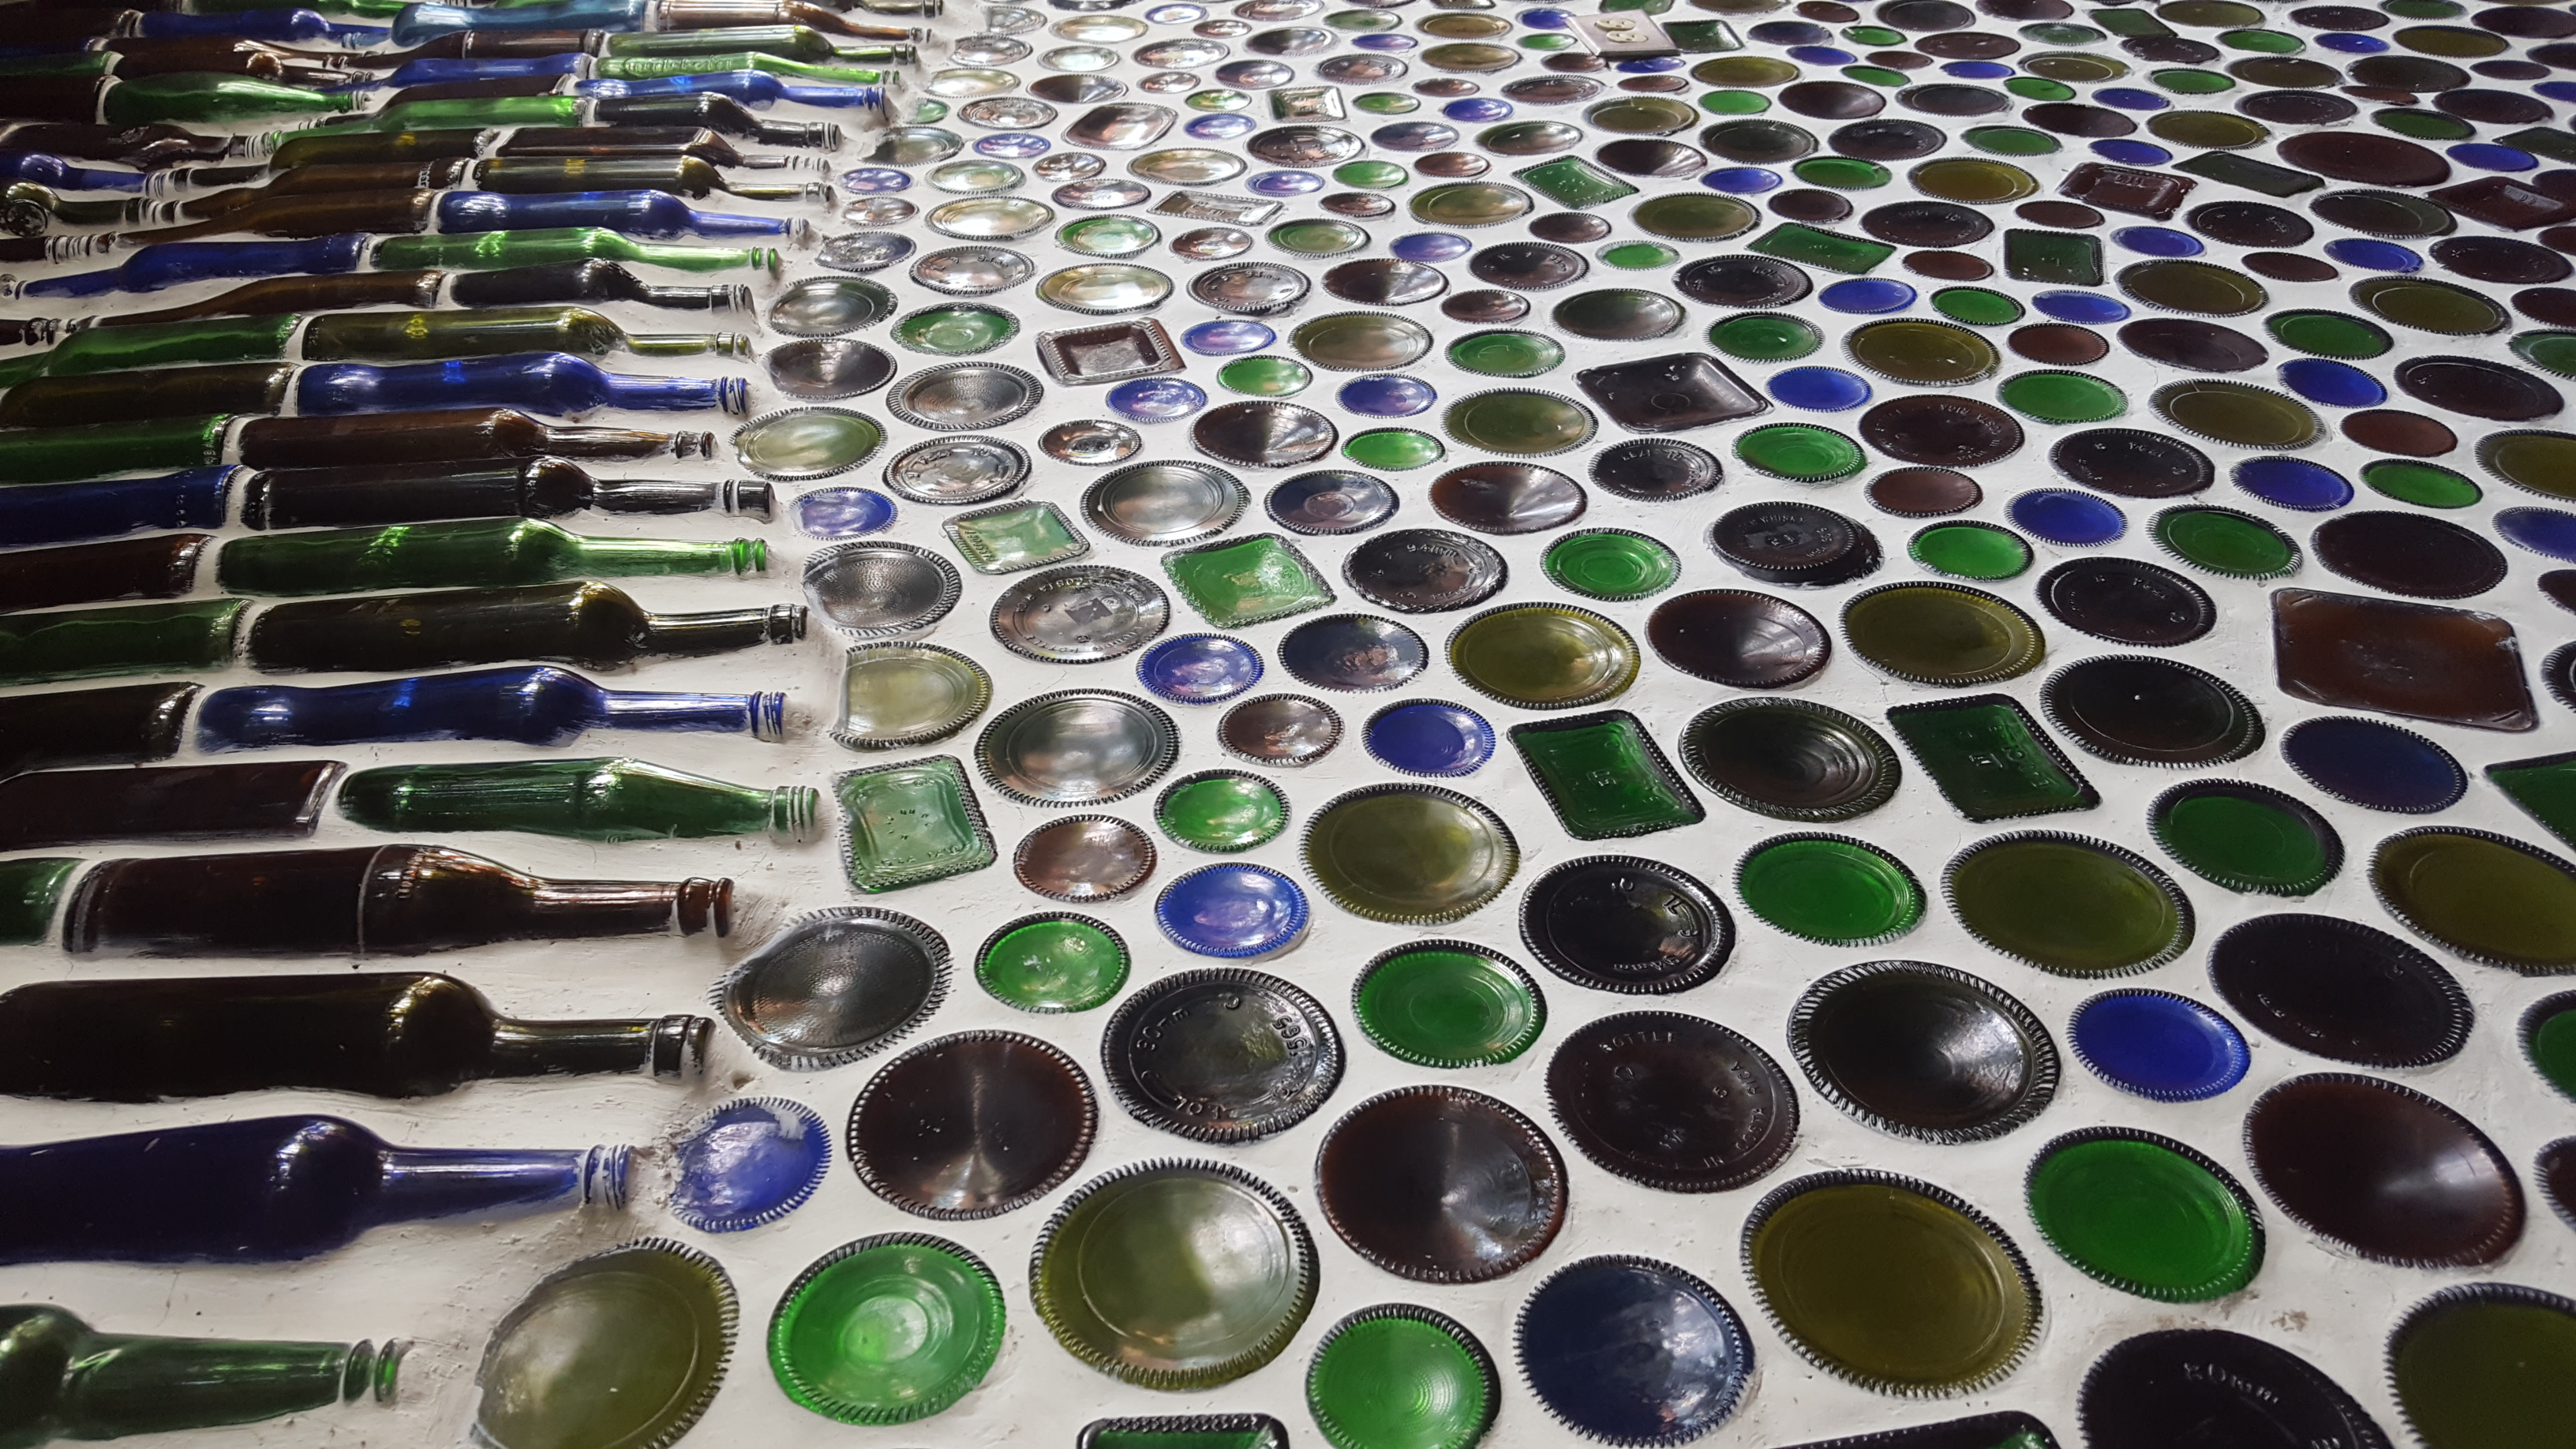 2016-06-11 bottle_wall_manuel_antonio_costa_rica (3)